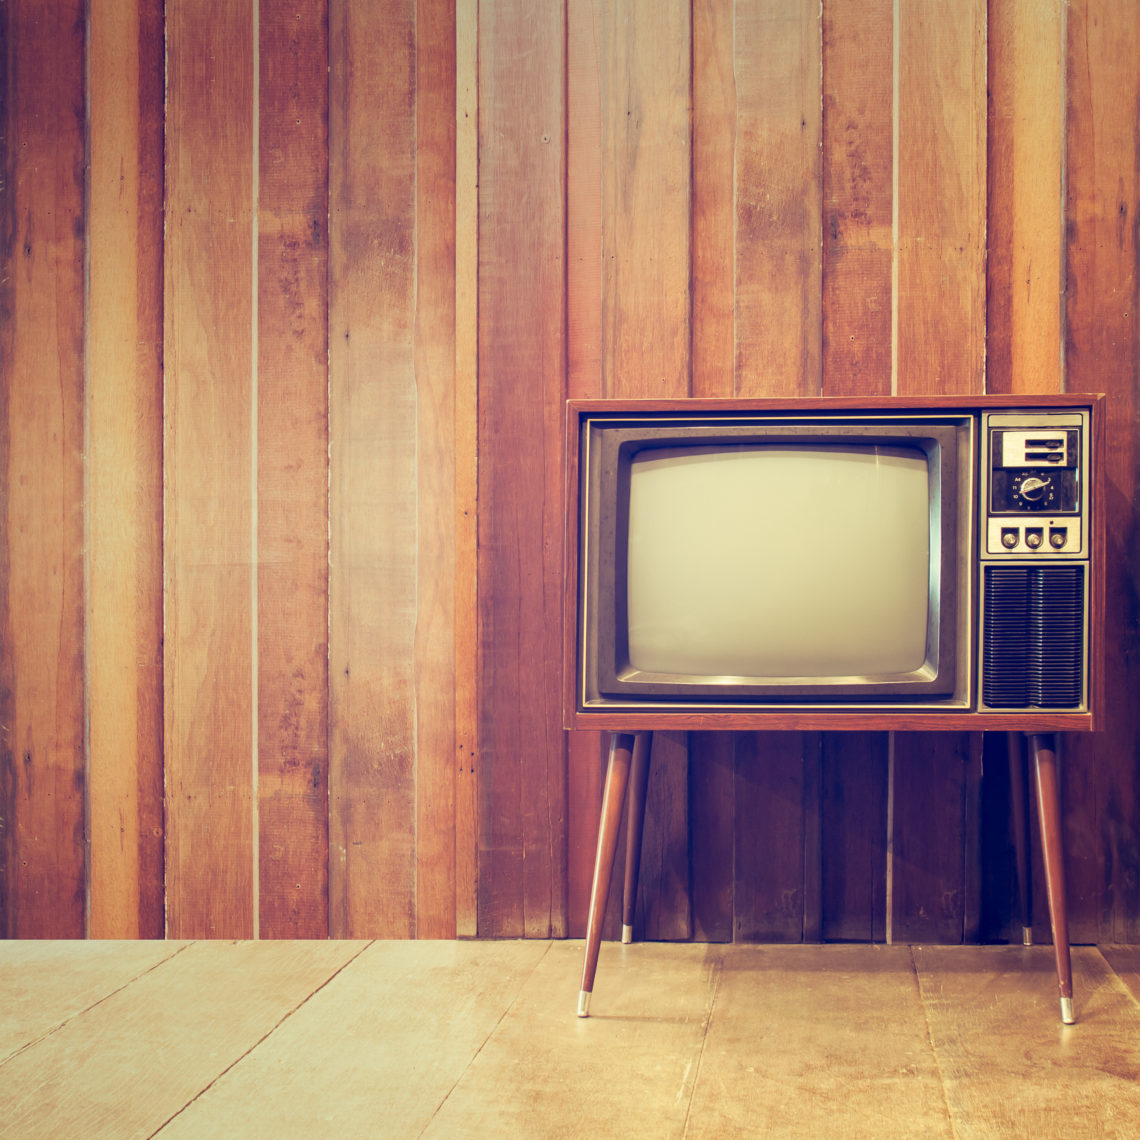 Old vintage television or tv,in vintage style